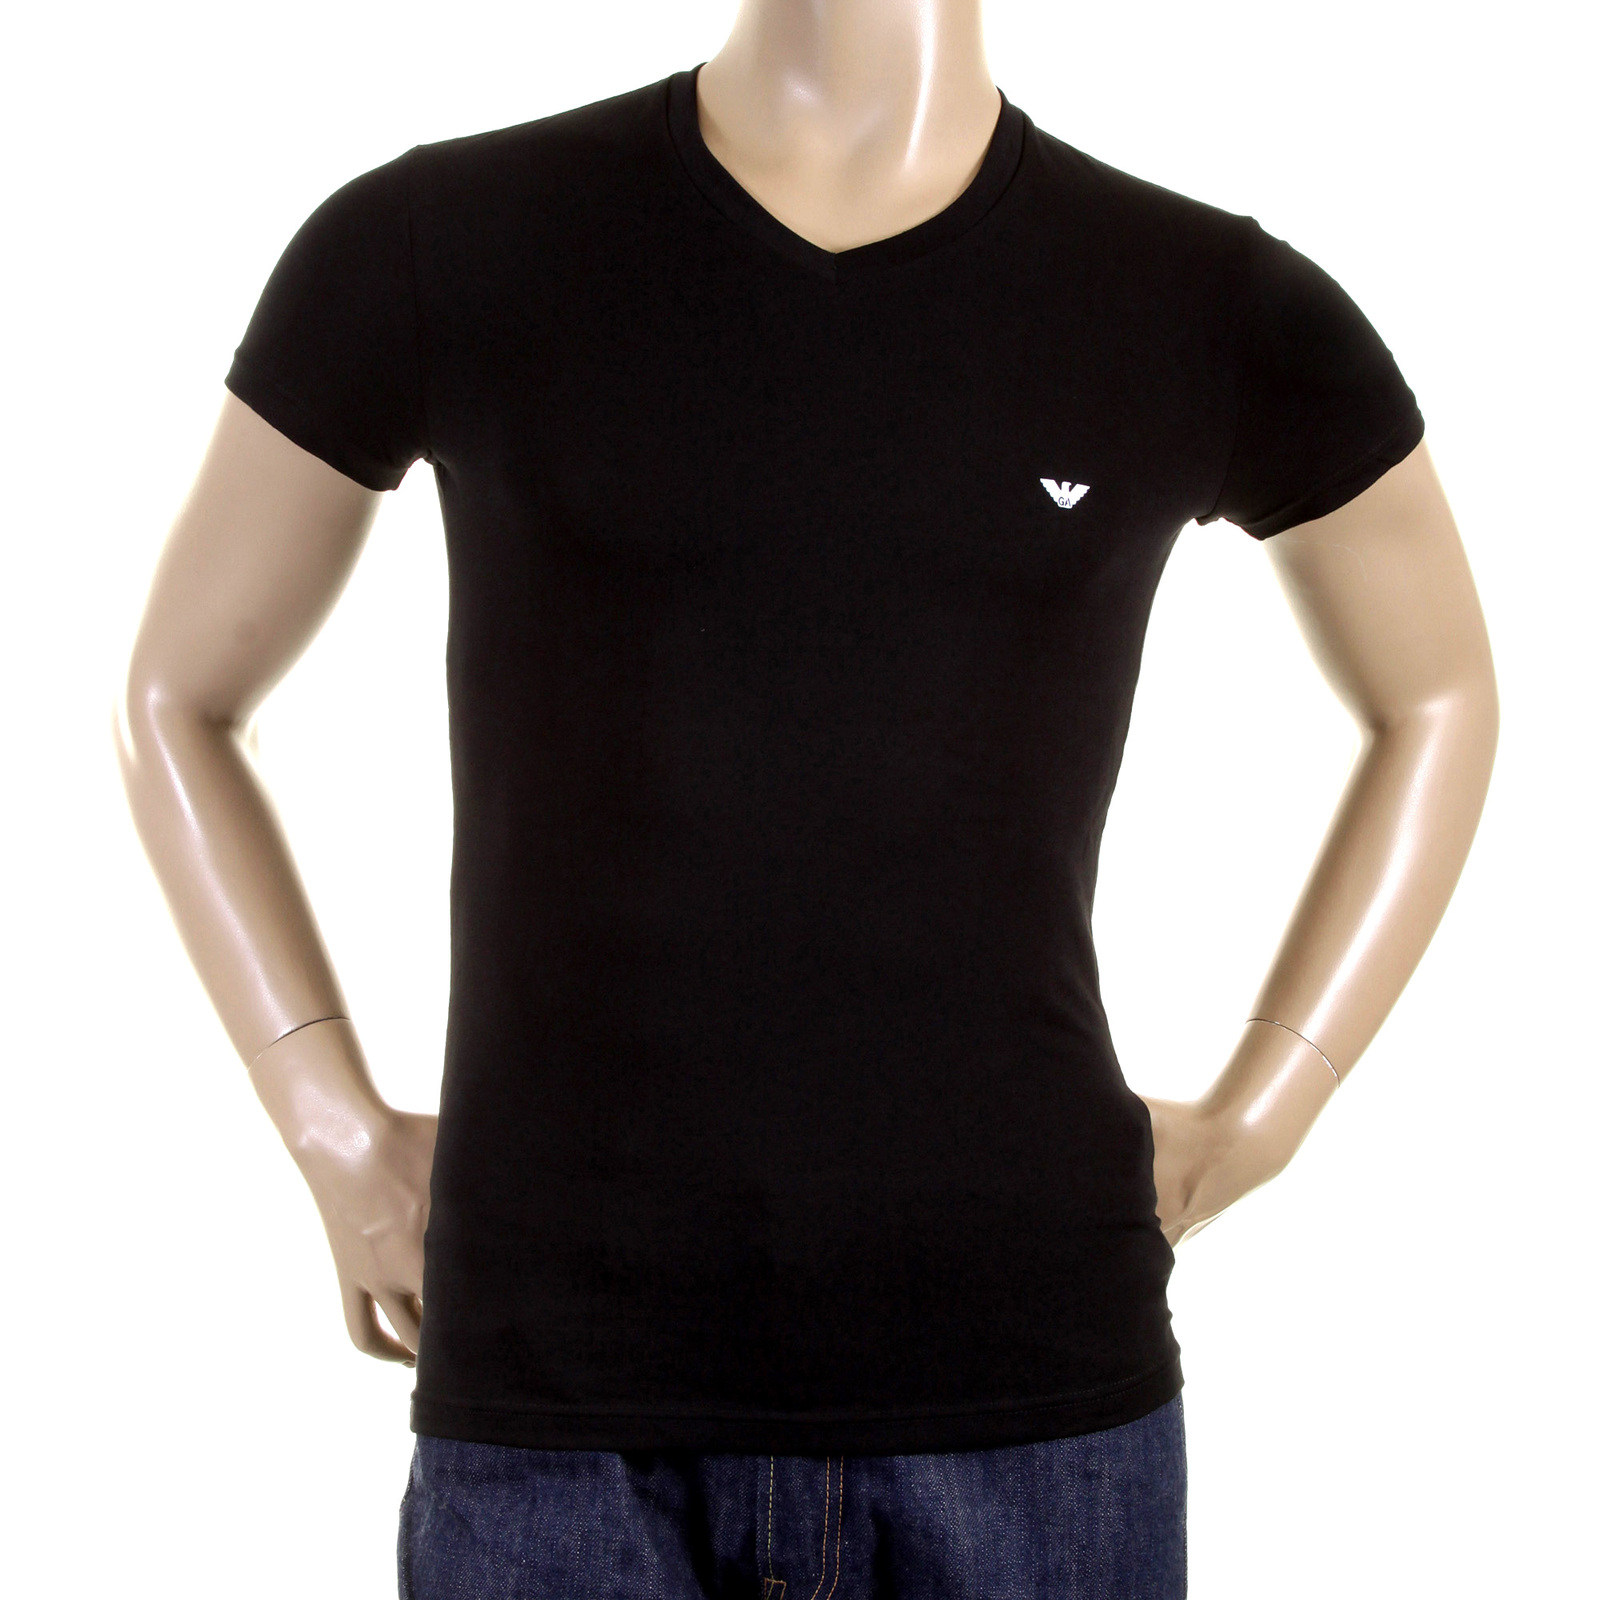 emporio armani t shirts black v neck t shirt 110752 cc518. Black Bedroom Furniture Sets. Home Design Ideas